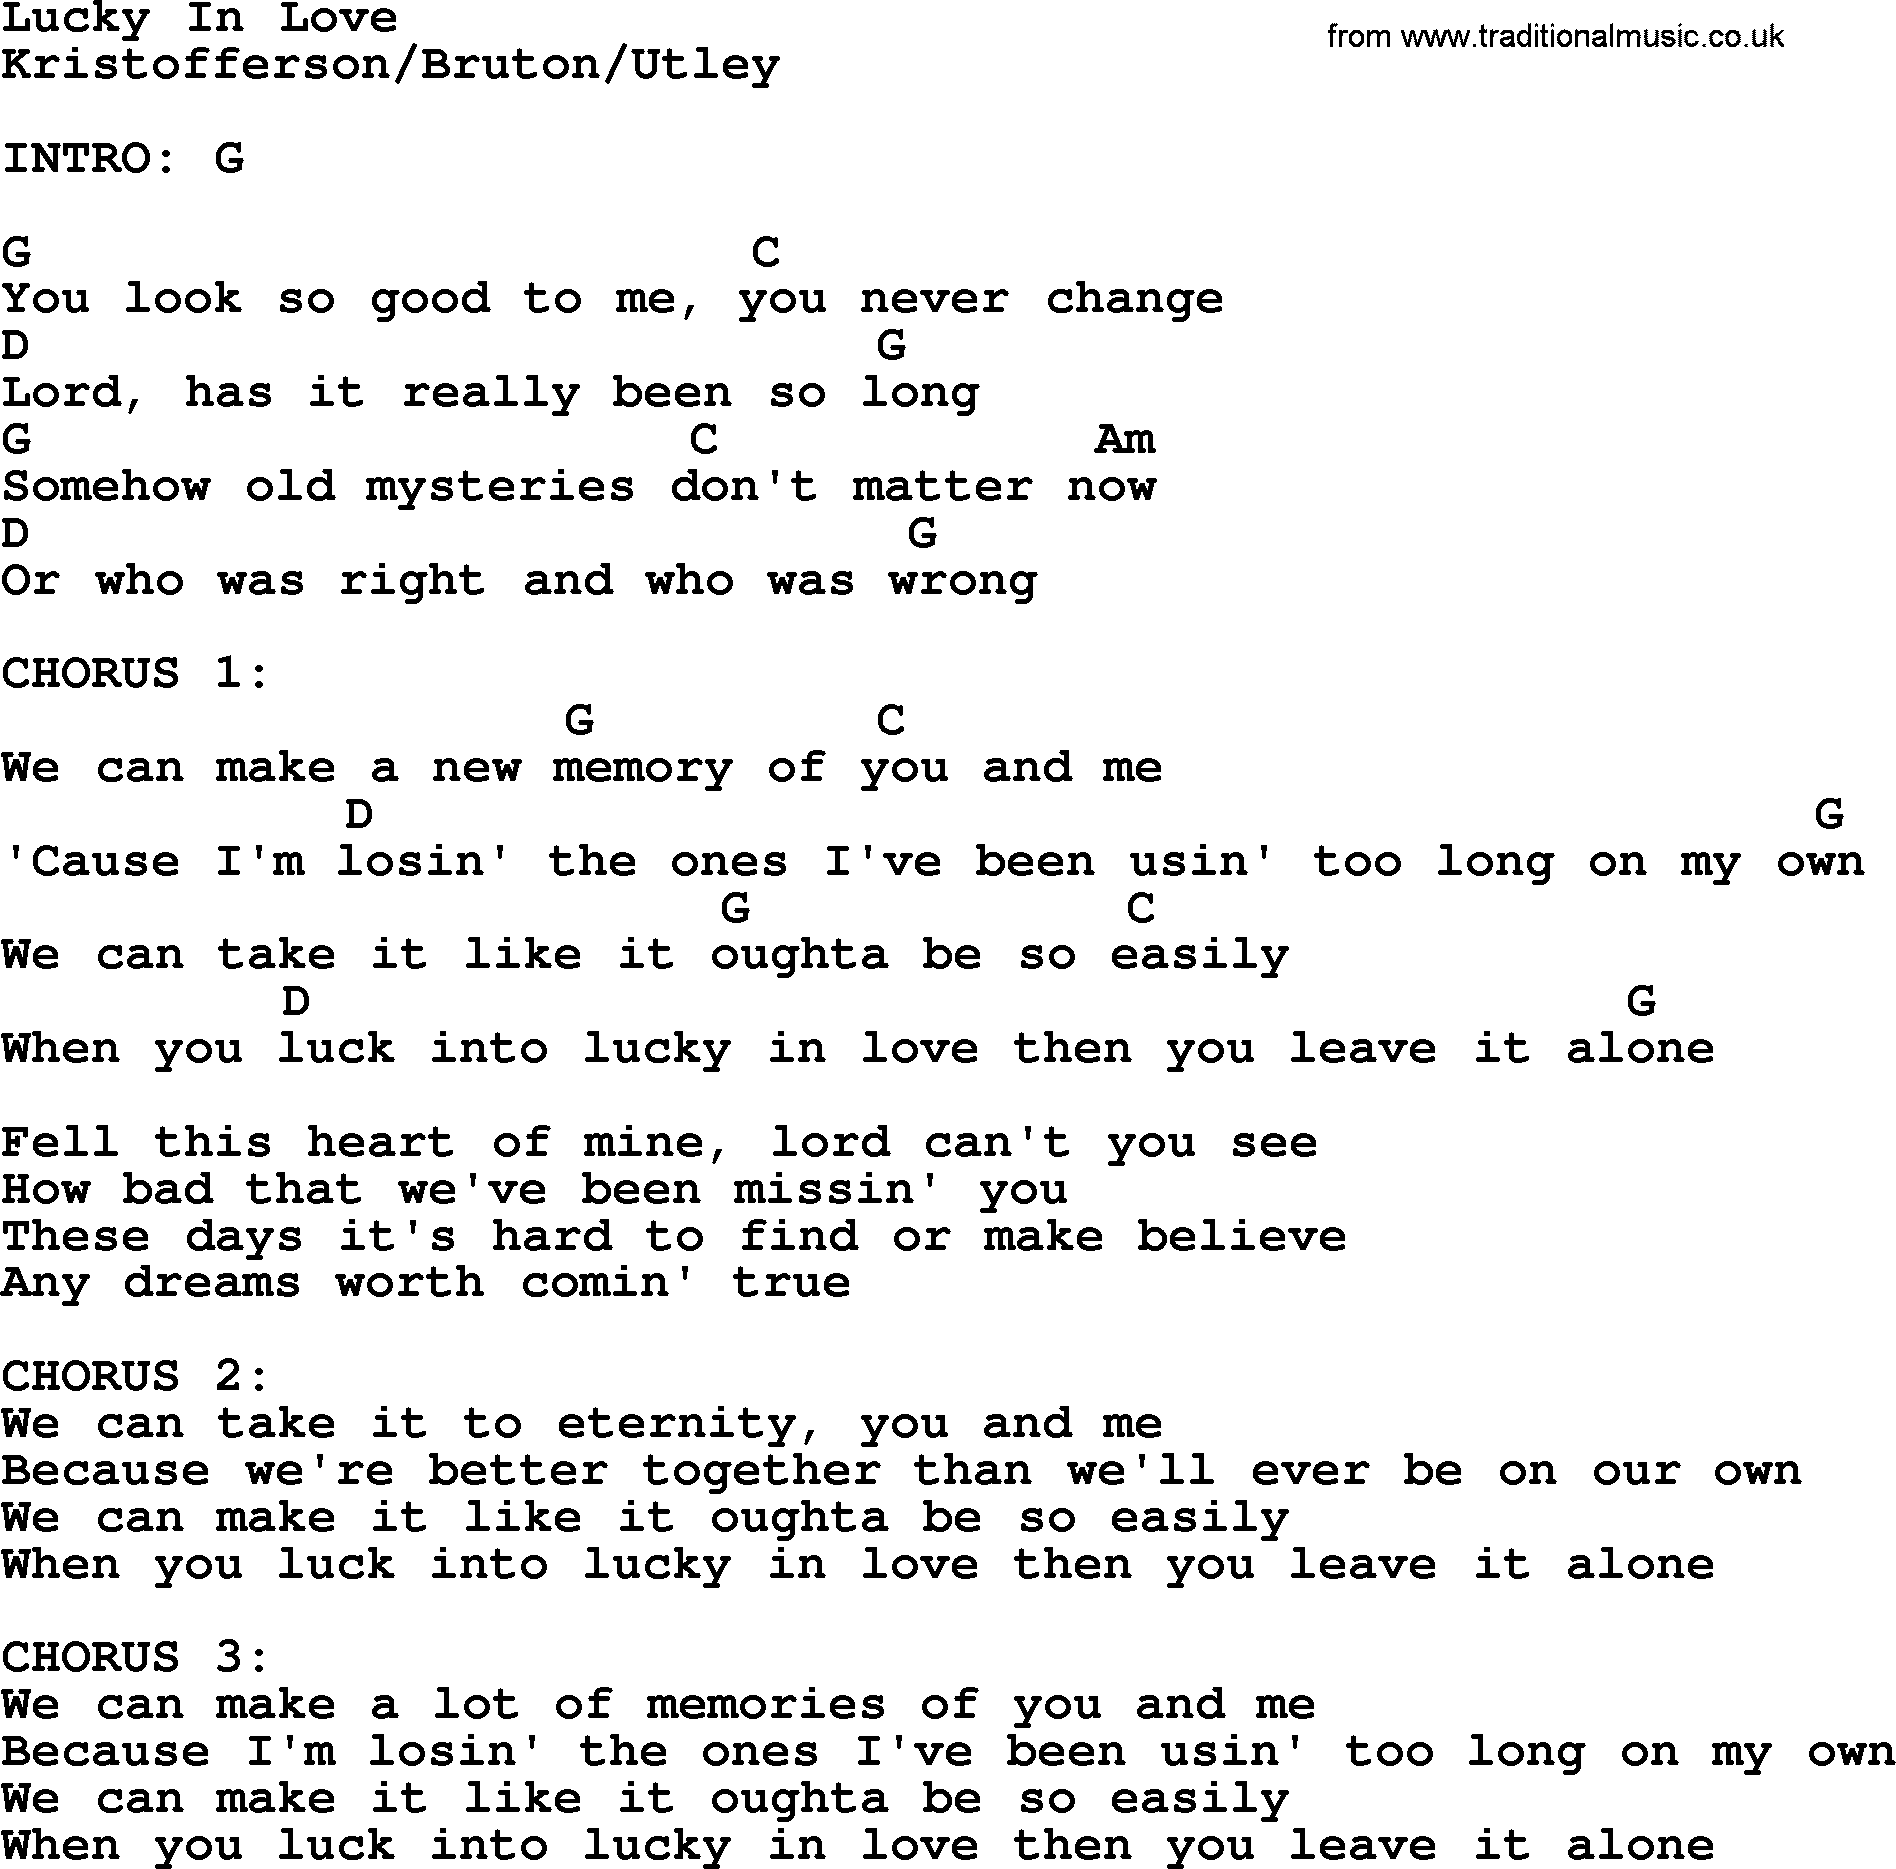 Kris Kristofferson Song Lucky In Love Lyrics And Chords